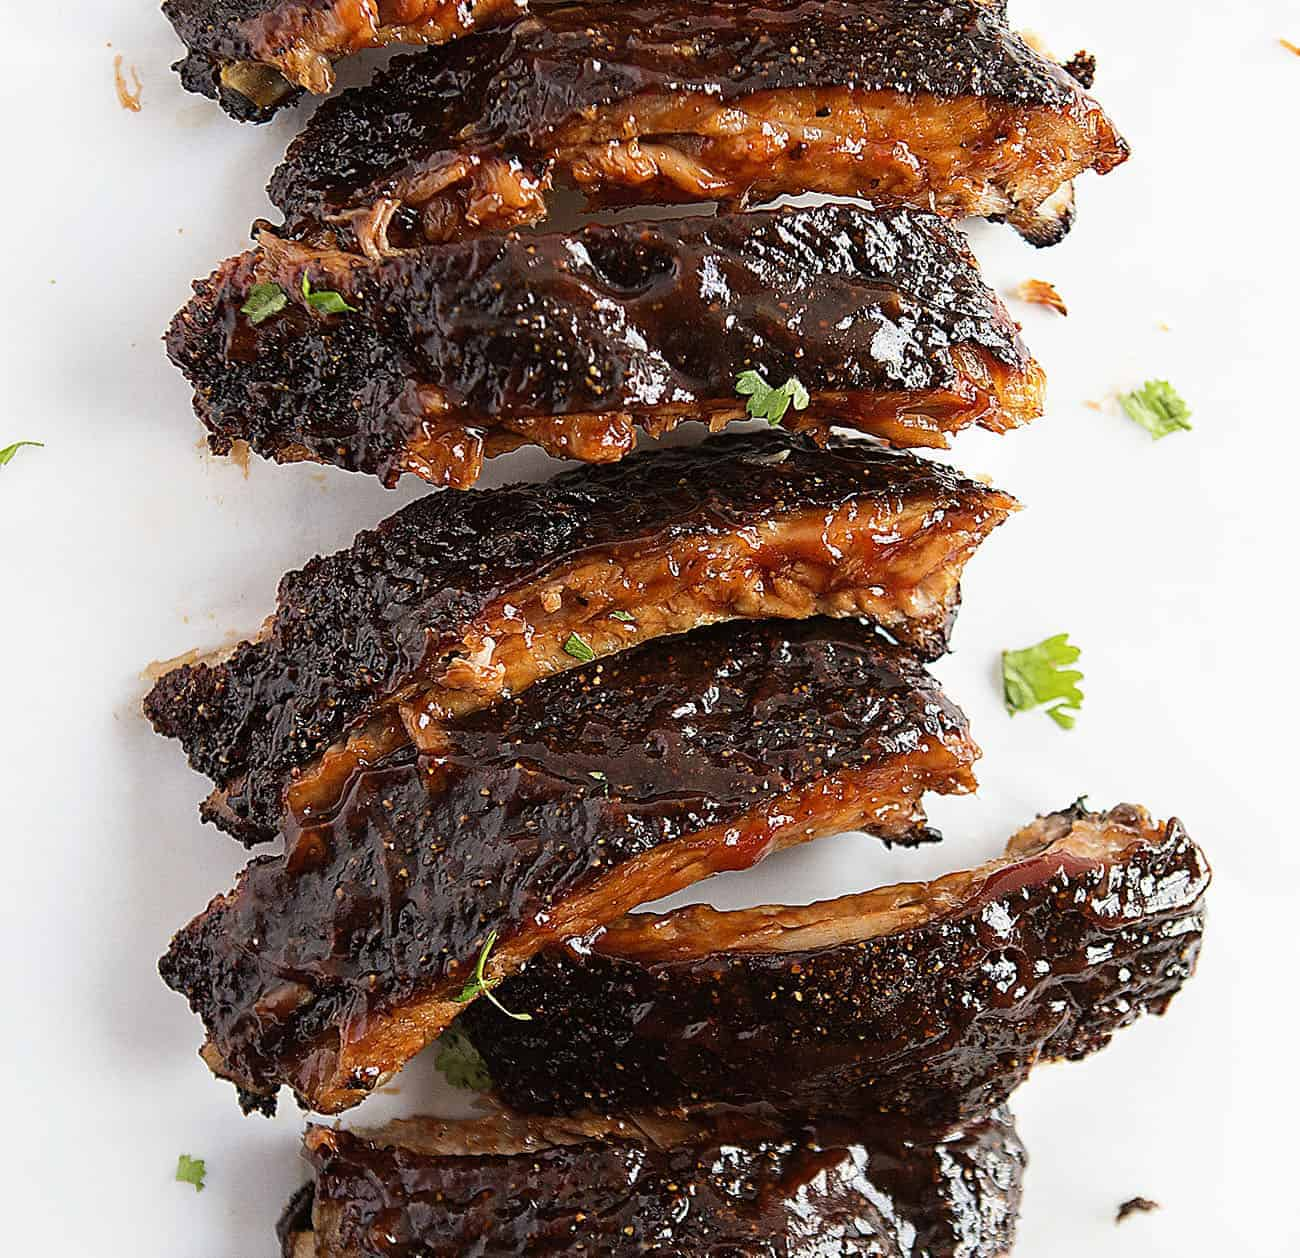 Overhead view of ribs